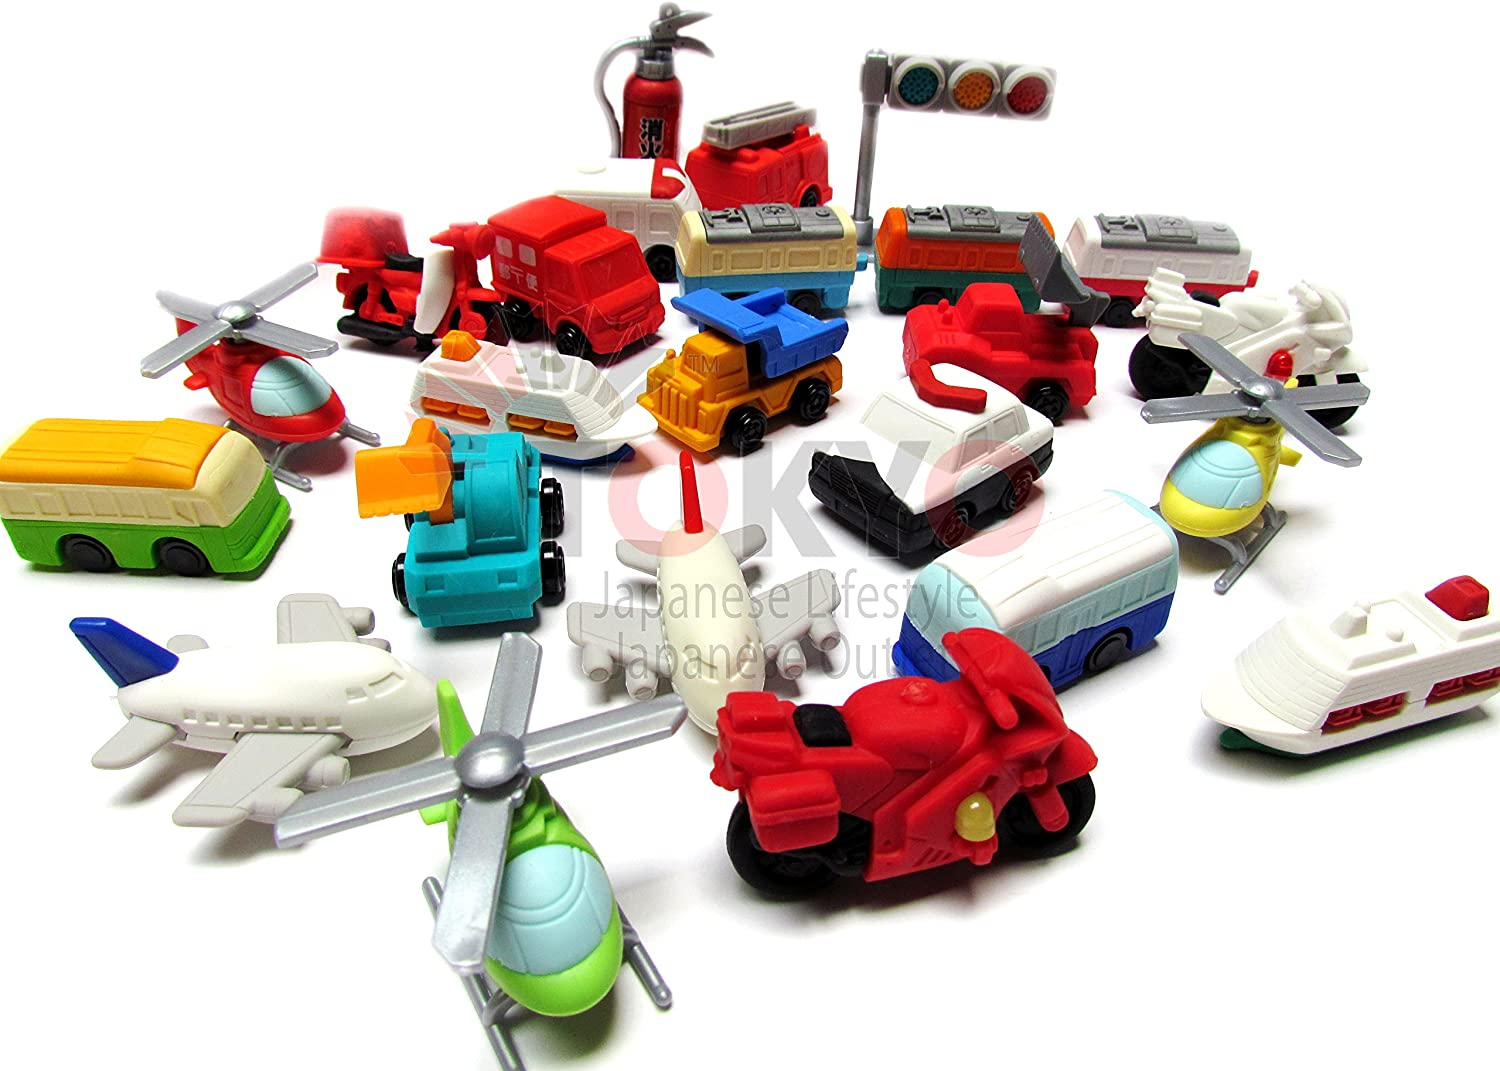 10 Assorted Iwako Eraser - Vehicle Collection (Erasers will be randomly selected from the image shown) 81Az0Y0uPYL